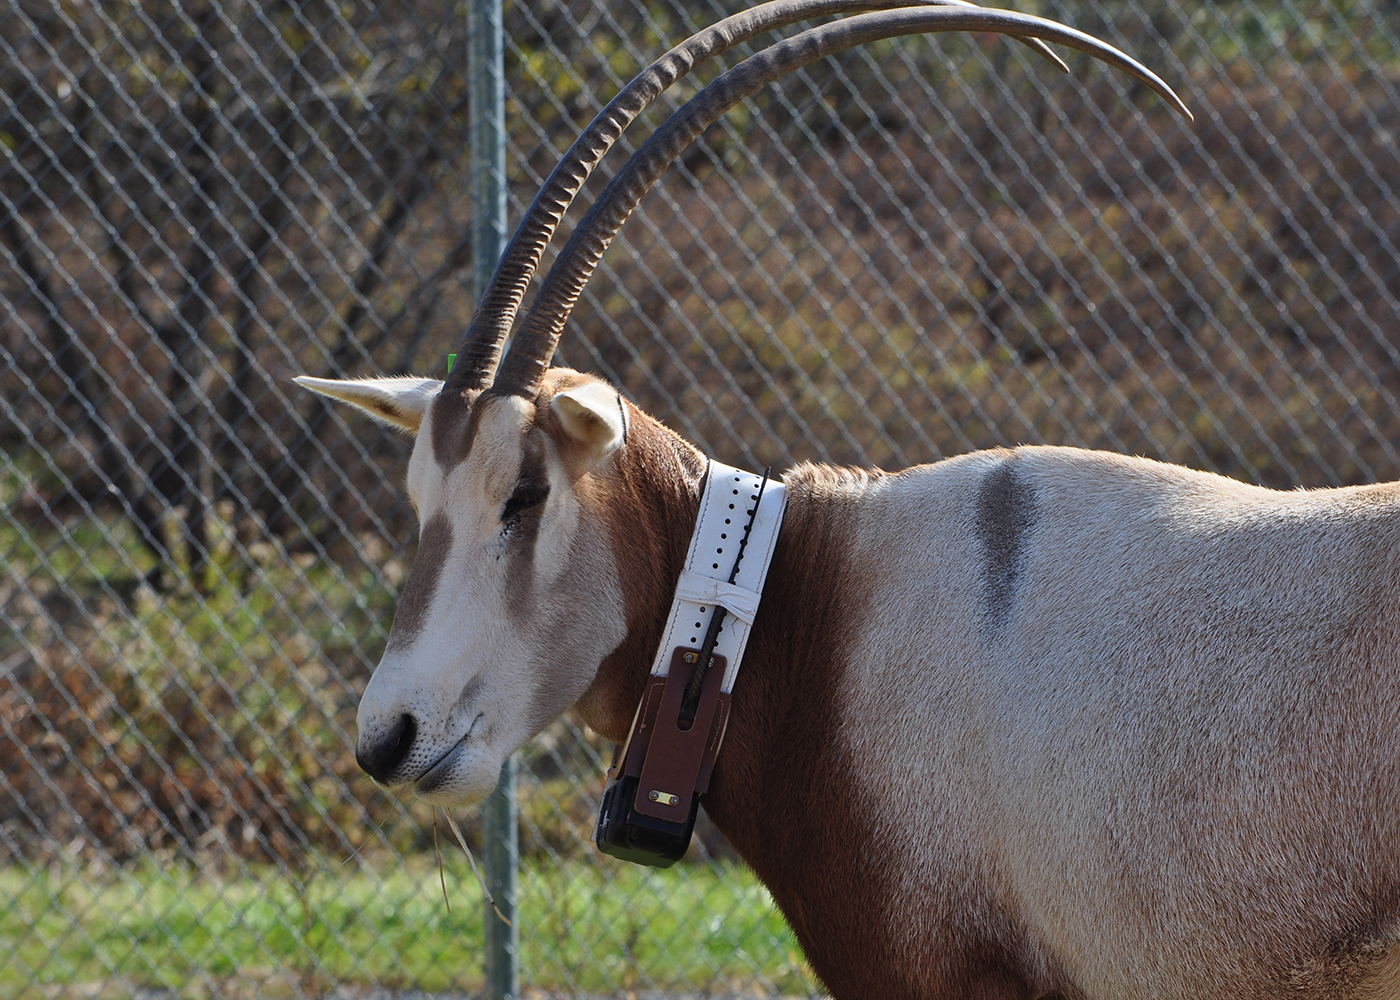 oryx with tracking collar on